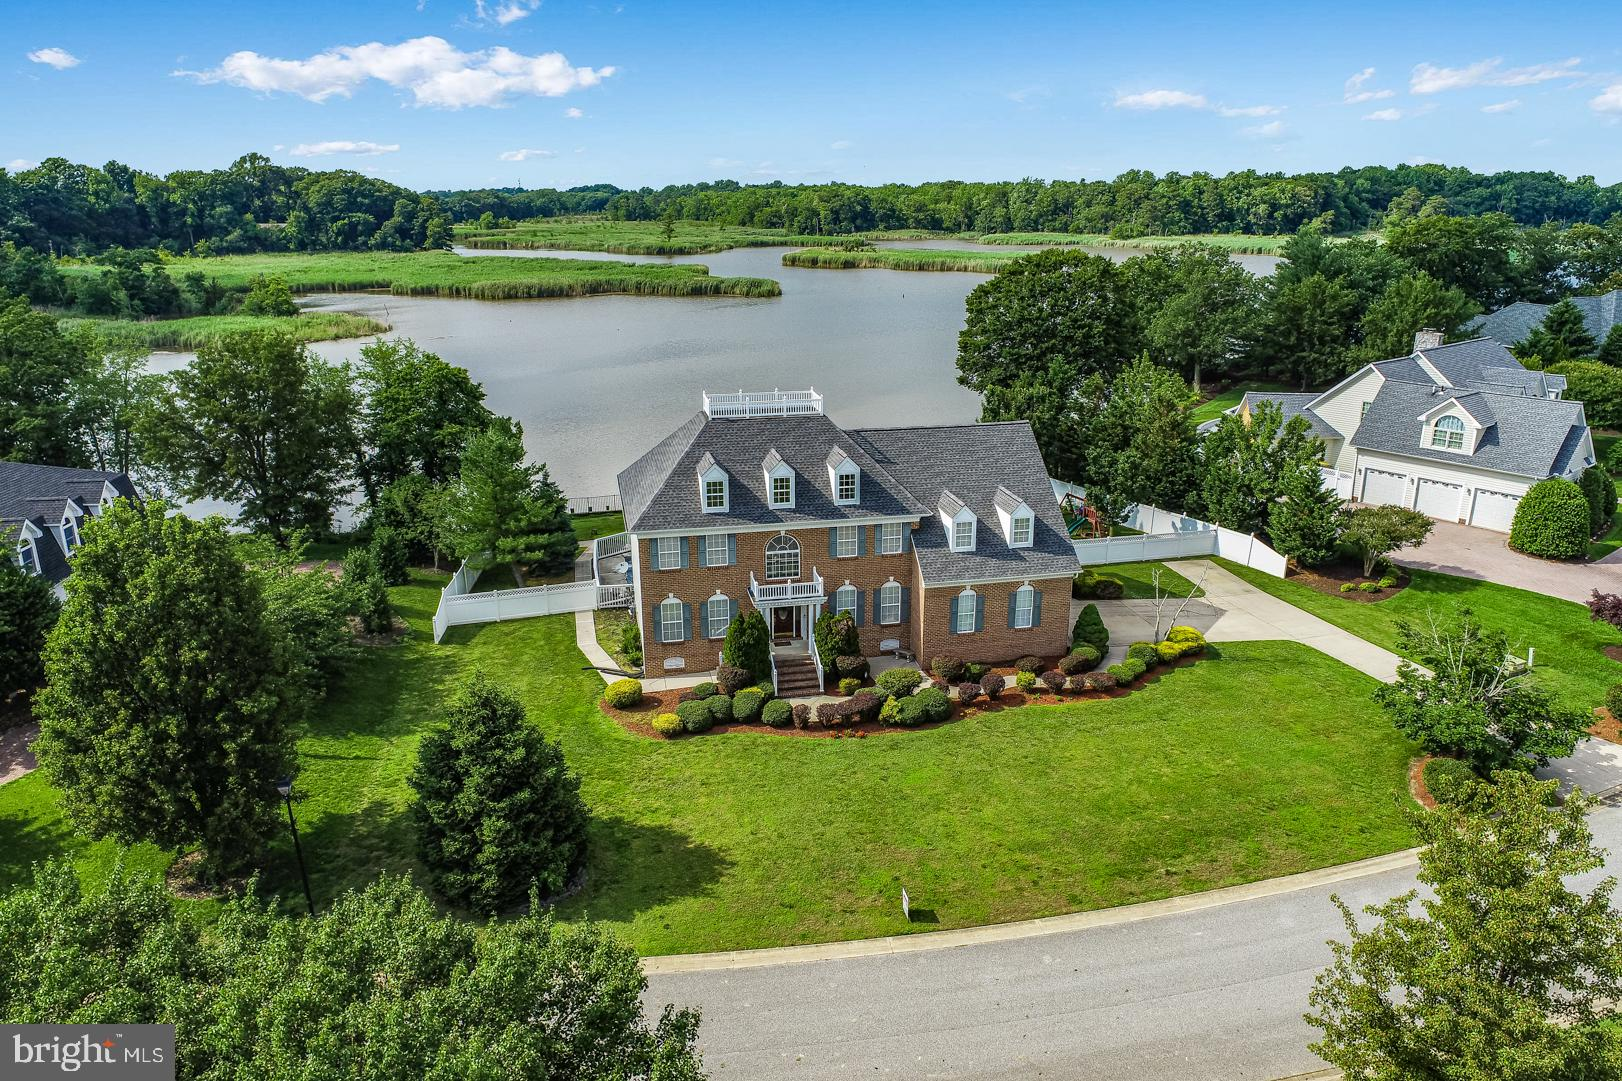 EXTREMELY RARE opportunity to own one of the most panoramic and private waterfront views of Issac Branch segment of the St. Jones River, in the esteemed neighborhood of Windswept.  This move-in-ready home offers over 3400 square feet of ideal living space. Enter the welcoming foyer and enjoy warm hardwood floors throughout both levels. The expansive renovated gourmet kitchen features an abundance of custom cabinetry, generous granite countertop space, stainless steel appliances, and an eat-in-space wrapped in windows. Bask in the serenity and tranquility created by the open floor plan, copious natural light,and recessed lighting. Other features of the main level include a formal dining room with chair rail molding detail and an office with pond views at the front of the home. The family room features a gas fireplace and a sliding door leading to the multi level deck. The upper level of the home boasts chair rail molding in the wide hall, a very spacious master suite with a sliding door leading to a private balcony to enjoy the incredible views while you sip your morning coffee. Four other generously sized bedrooms share two renovated bathrooms, including one bedroom with en suite bath.  Tap into the potential - the full unfinished basement offers ample storage and/or the opportunity to create additional entertaining space. The basement has been fully waterproofed including installation of 2 sump pumps with backup battery, vapor barrier, and floor drainage system throughout.  This home boasts numerous additional upgrades throughout including a gated in-ground pool with new liner and new motor, brand new roof installed in May 2021,  new bulkhead, two zone HVAC systems both recently replaced, tankless continuous hot water heater, irrigation system, aluminum and vinyl fences installed, new carpet in bedrooms upstairs, whole house paint,  incredible landscape, all situated on a generously sized lot in a highly coveted neighborhood. Wake up to the amazing views that a wat